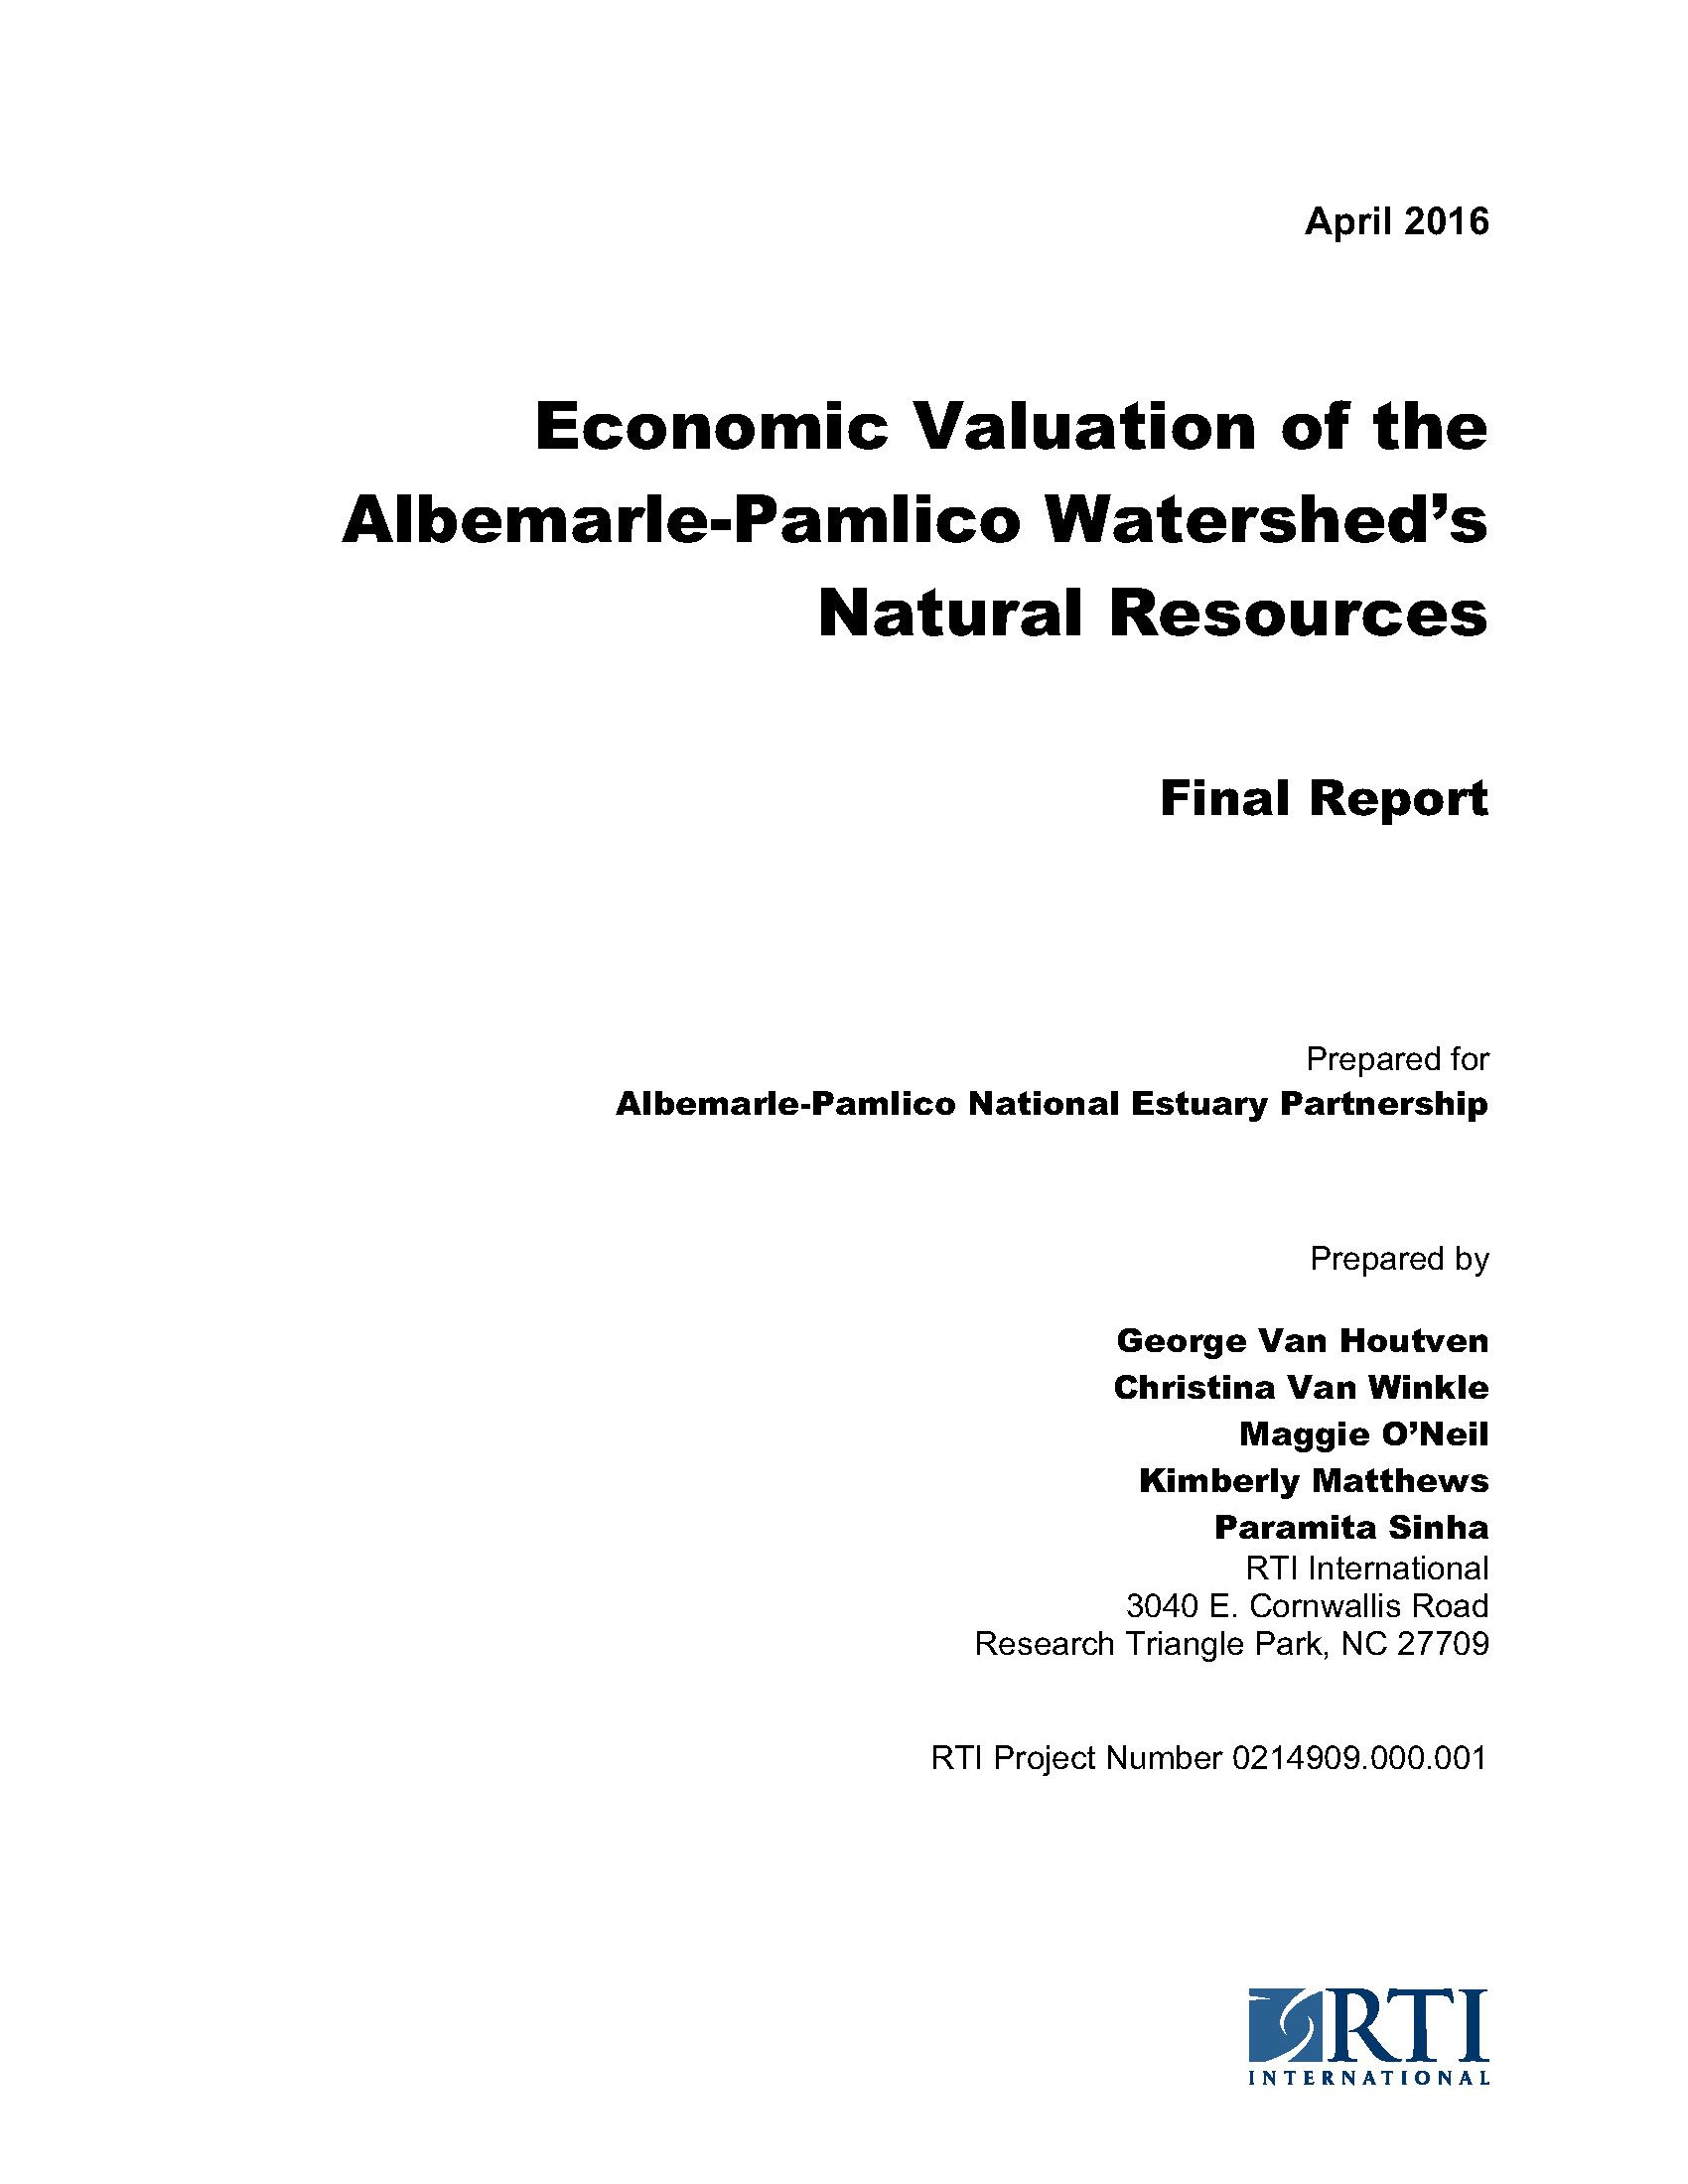 Economic Valuation of the Albemarle-Pamlico Watershed's Natural Resources